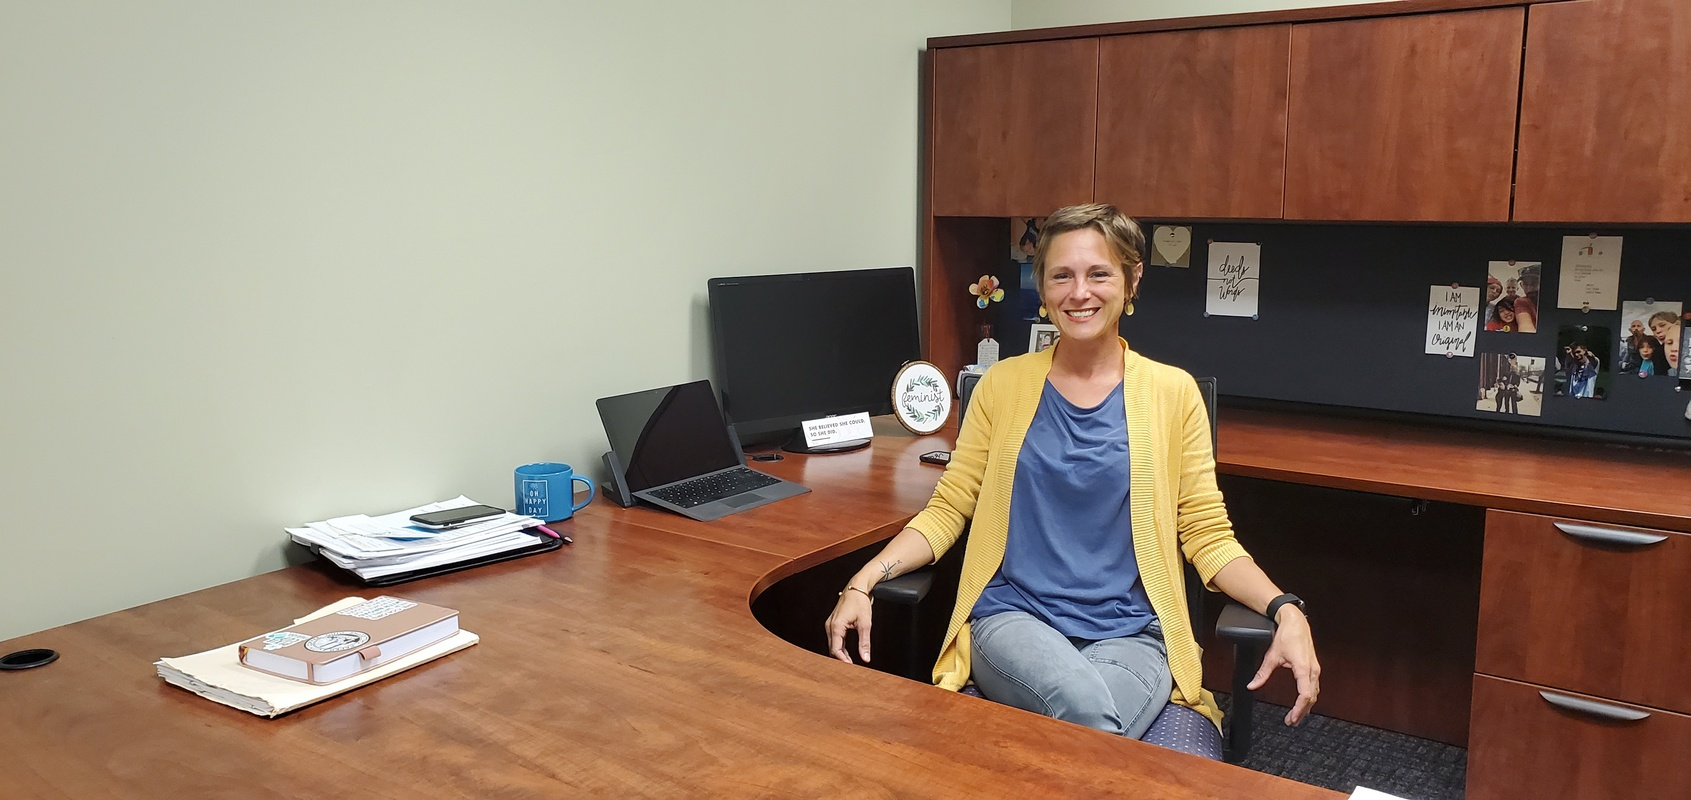 Marie Wilbanks - making our community brighter and warmer